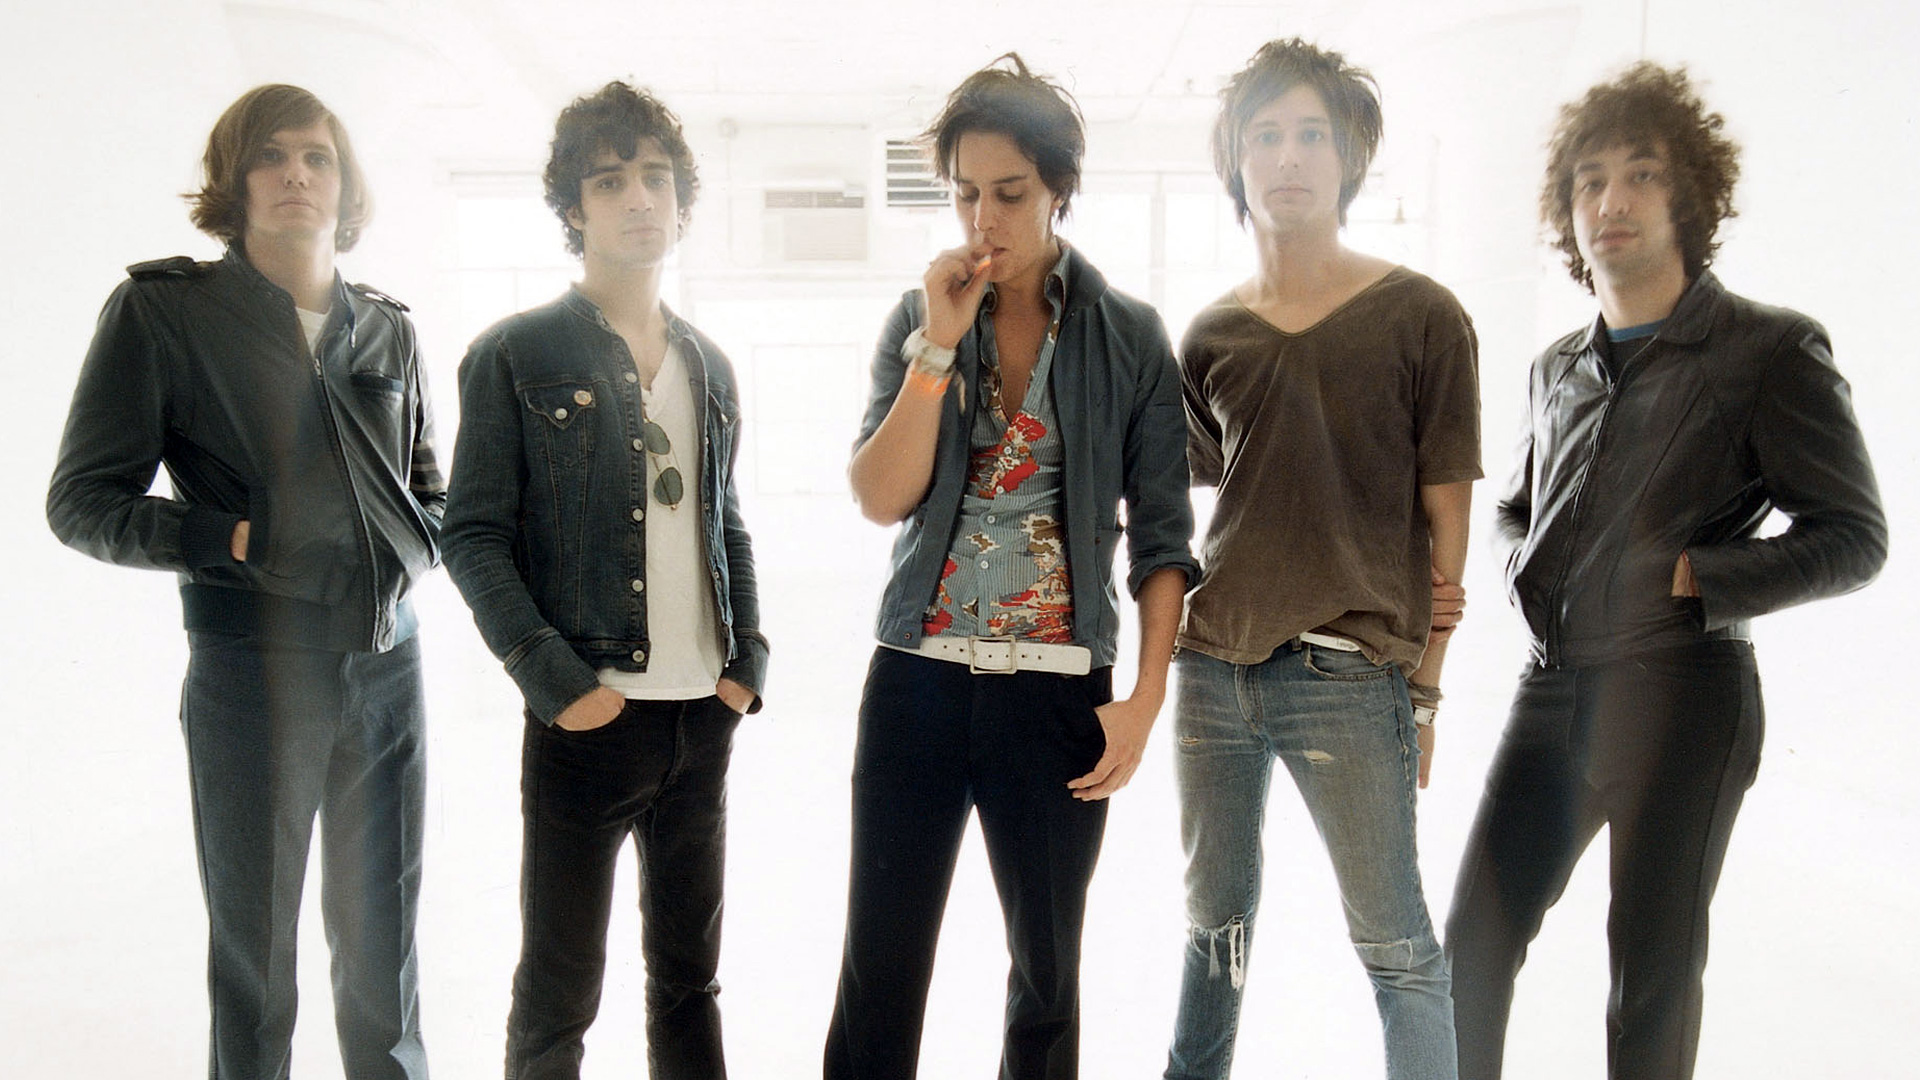 Wallpaper Arctic Monkeys Iphone The Strokes Full Hd Wallpaper And Background Image